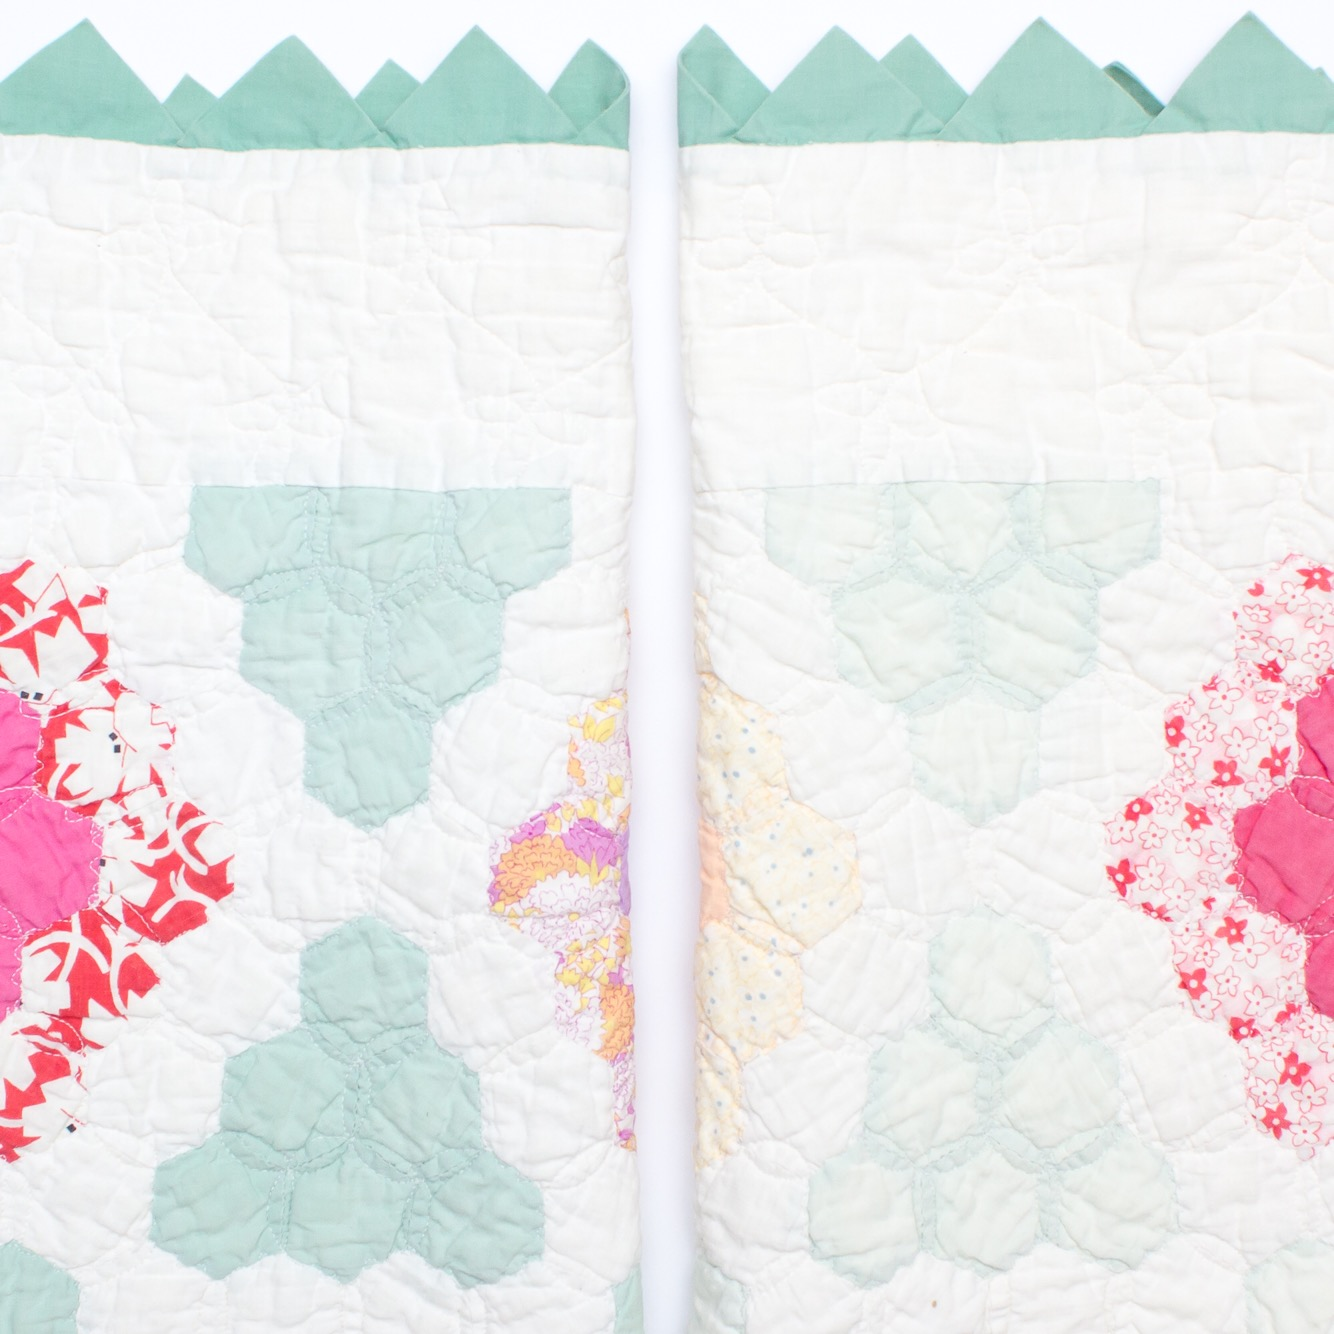 Everything you need to know about best practices for fabric storage to prevent damage to your quilt fabric stash. Follow these simple steps to keep your quilt fabrics looking brand new.